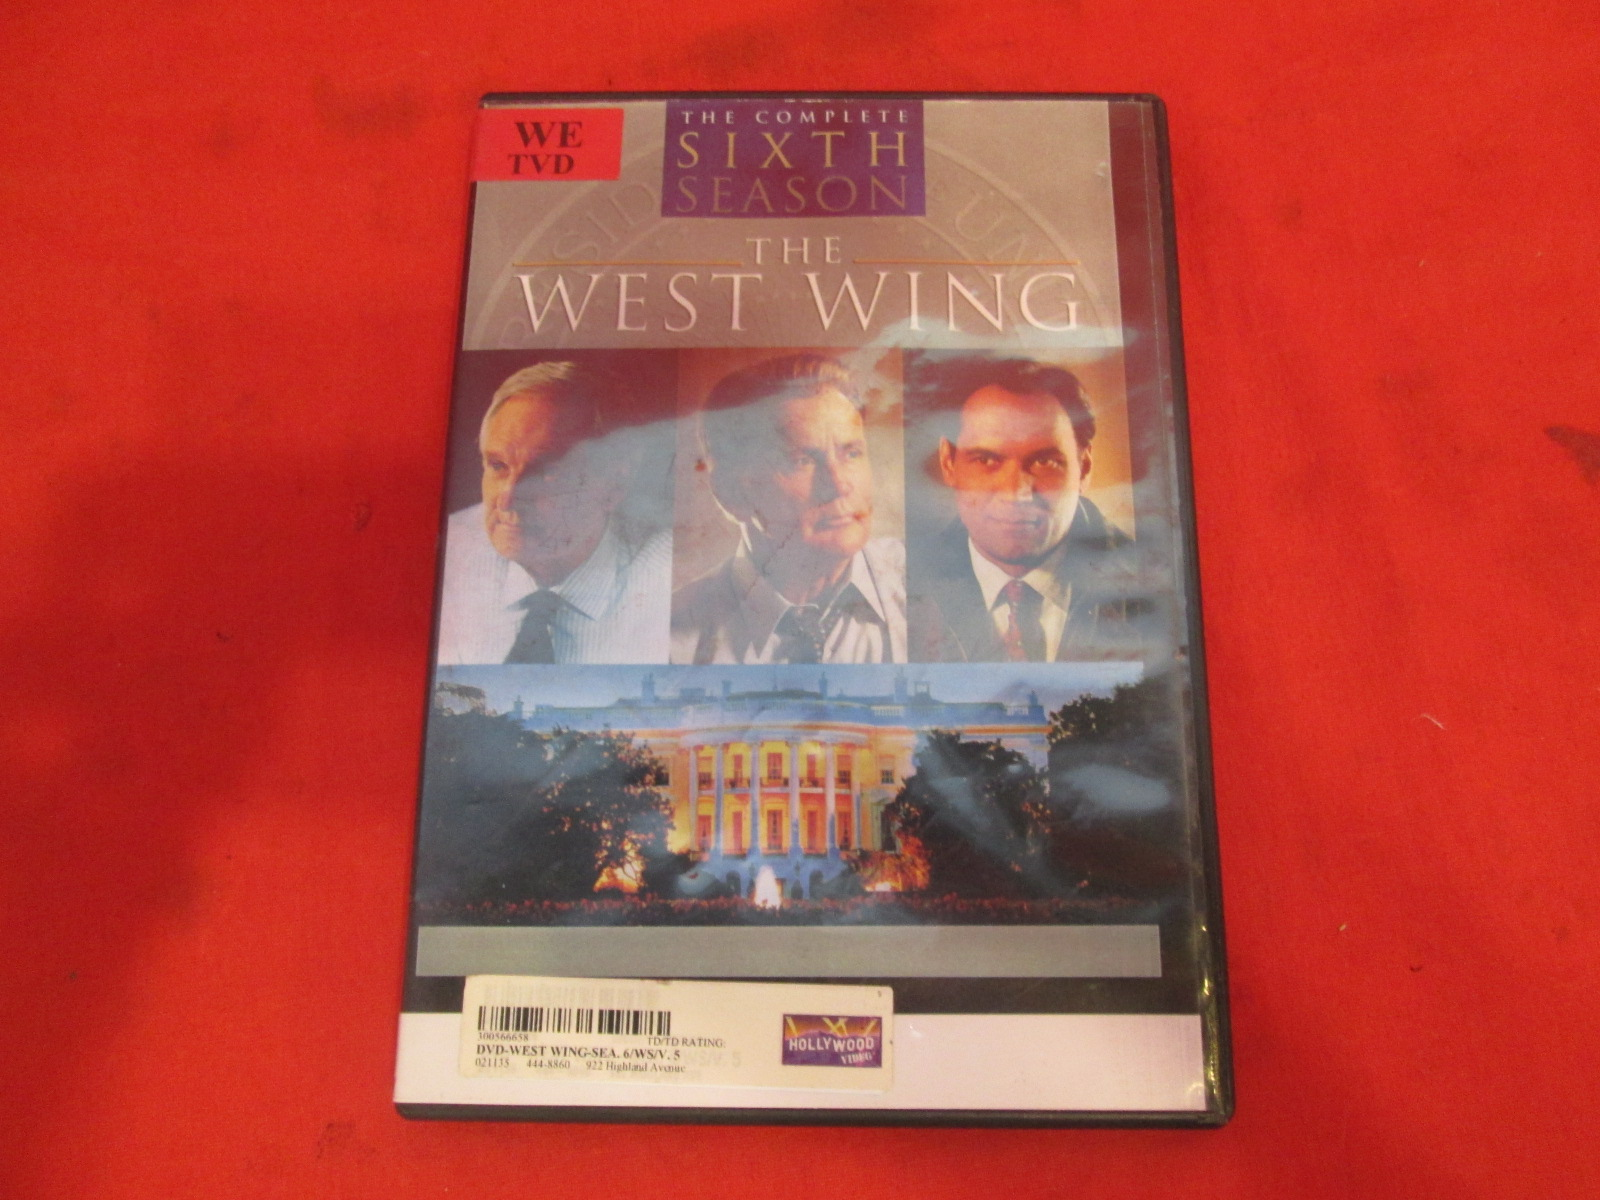 the west wing season 6 disc 5 on dvd with martin sheen. Black Bedroom Furniture Sets. Home Design Ideas